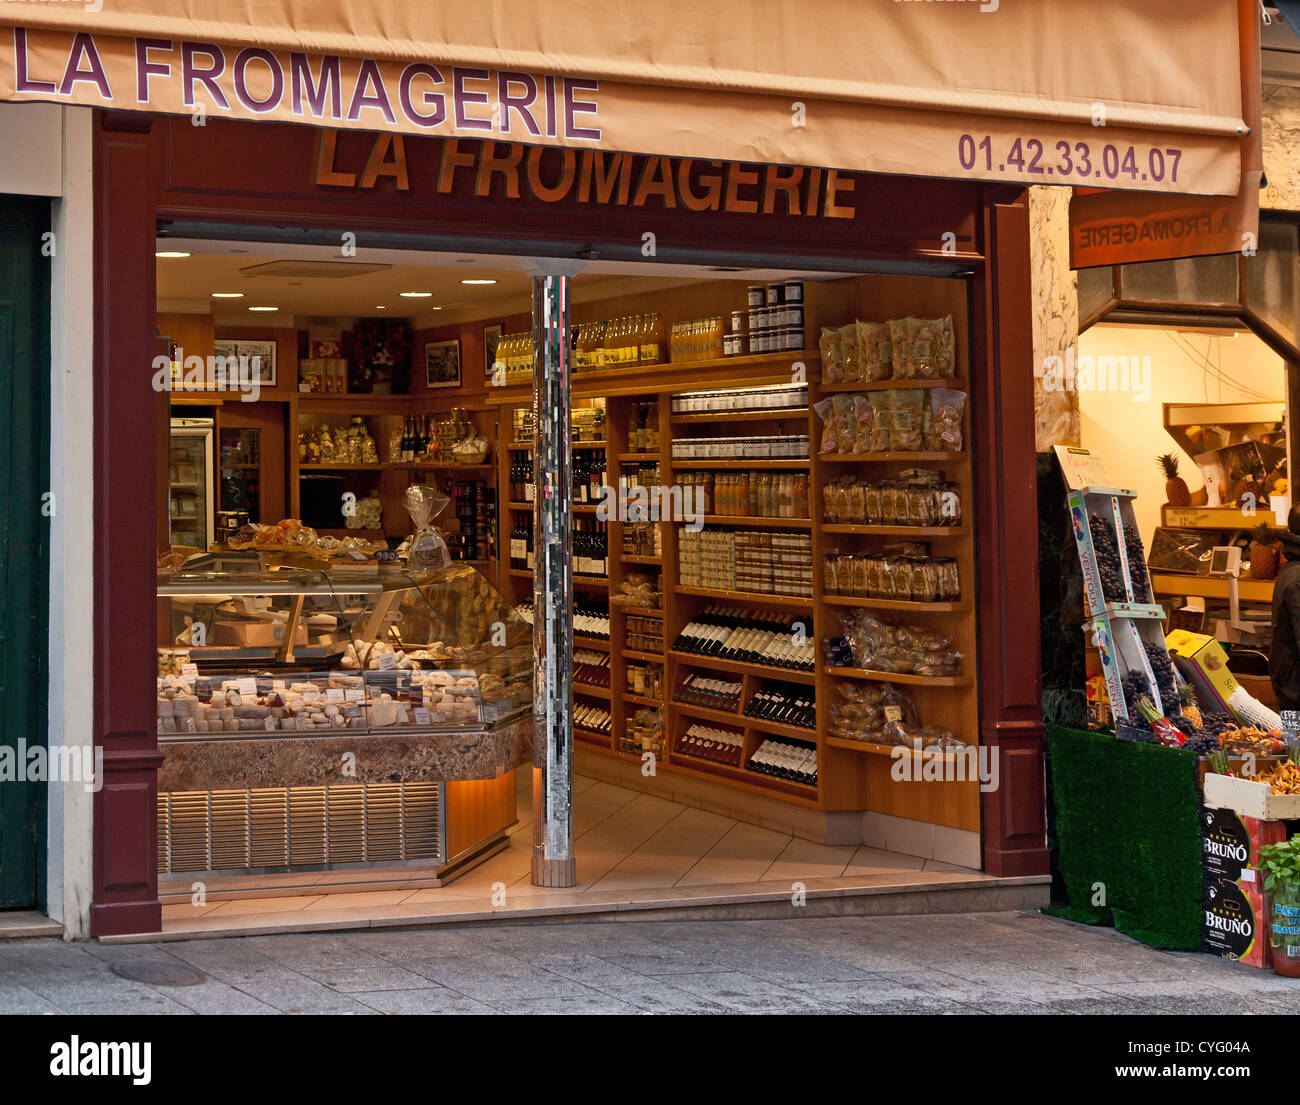 La Fromagerie, specialist cheese, wine and delicatessen shop in central Paris, France. Chilled display and goods - Stock Image